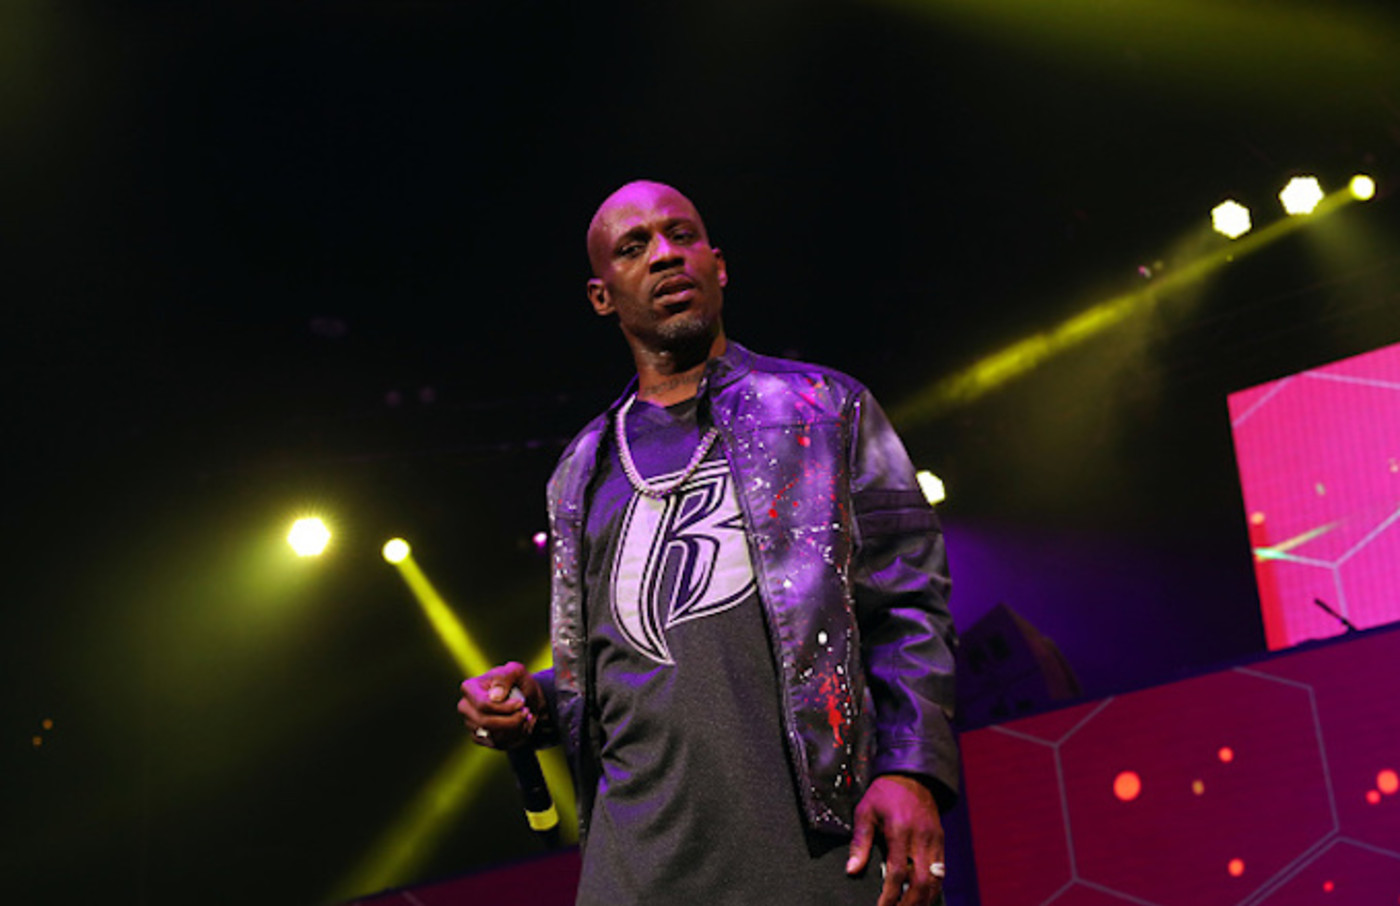 DMX performs during the Ruff Ryders Reunion Concert